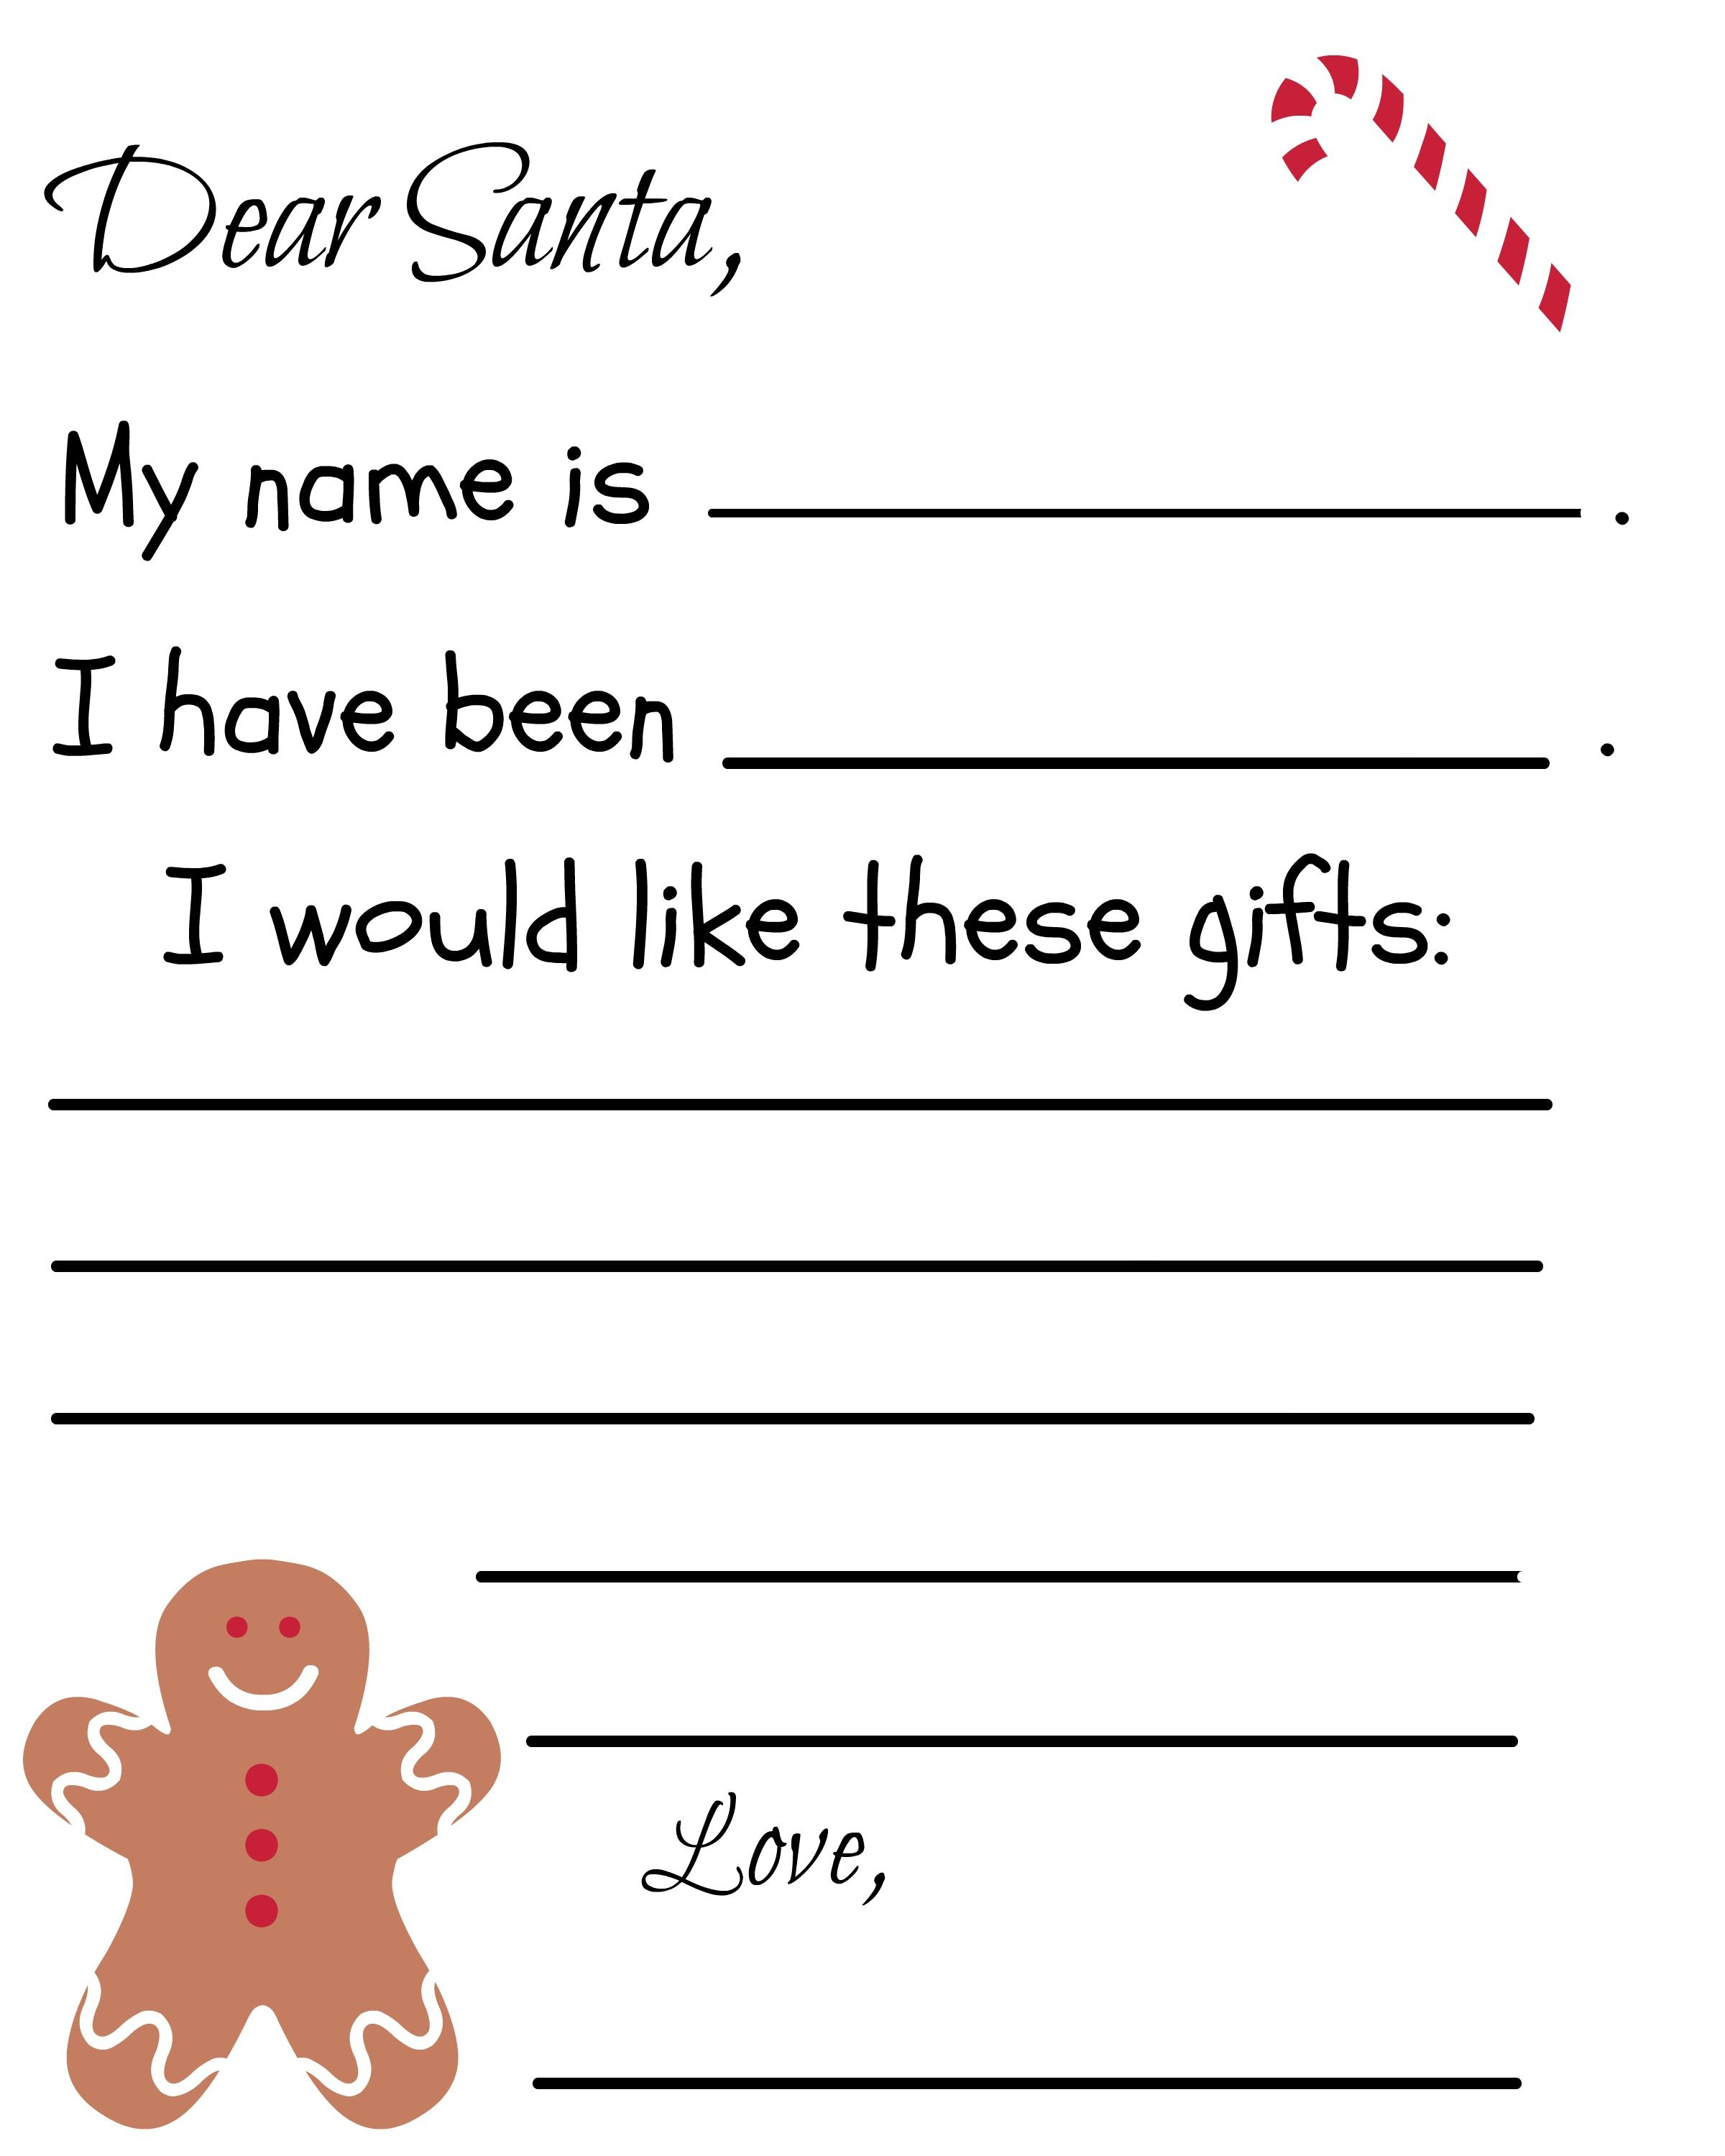 Letter to Santa Template Free Printable - Free Printable Santa Letter Template